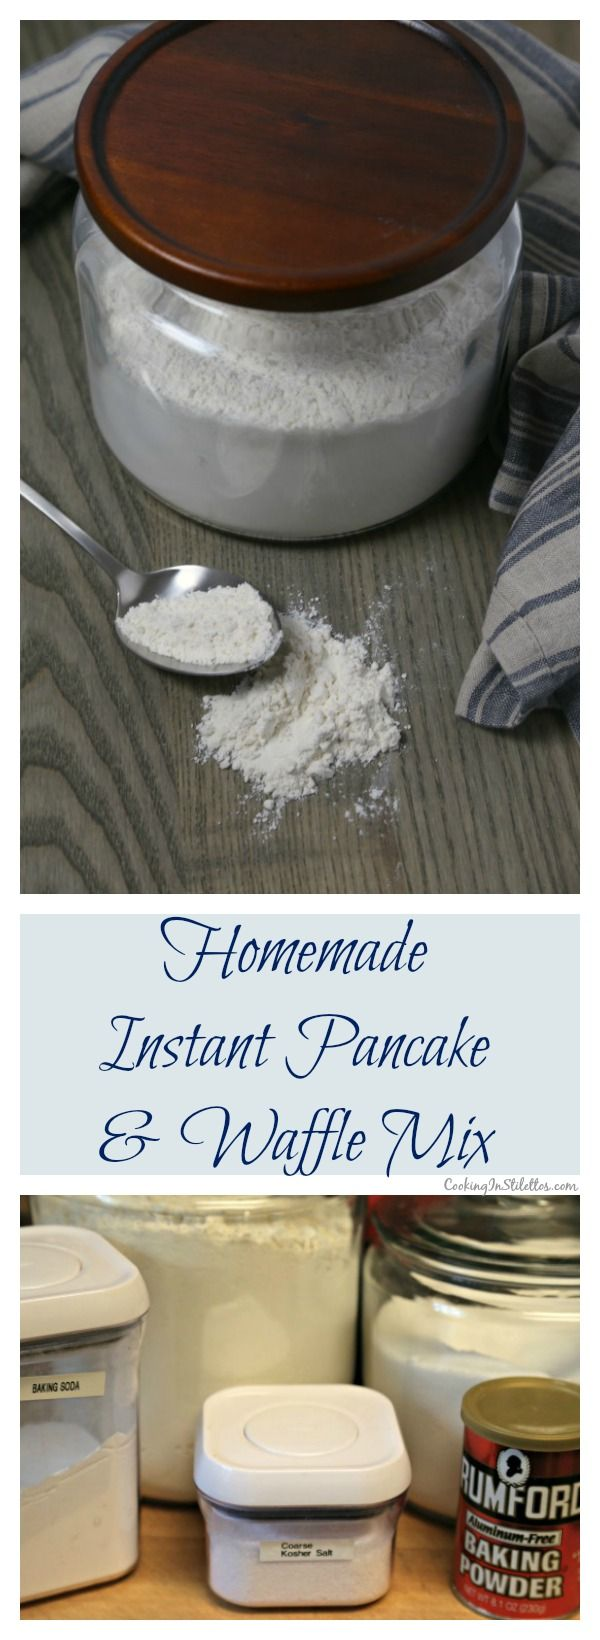 Forget about those store-bought pancake mixes - this easy Homemade Instant Pancake and Waffle Mix from CookingInStilettos.com uses just a few ingredients already in your pantry and couldn't be easier to make.  | Pancake Mix | Waffle Mix | Instant Pancake and Waffle Mix | DIY Baking Mixes | Homemade Baking Mix | Breakfast | Busy Morning Breakfast | Pantry Staple Recipe  via @CookInStilettos